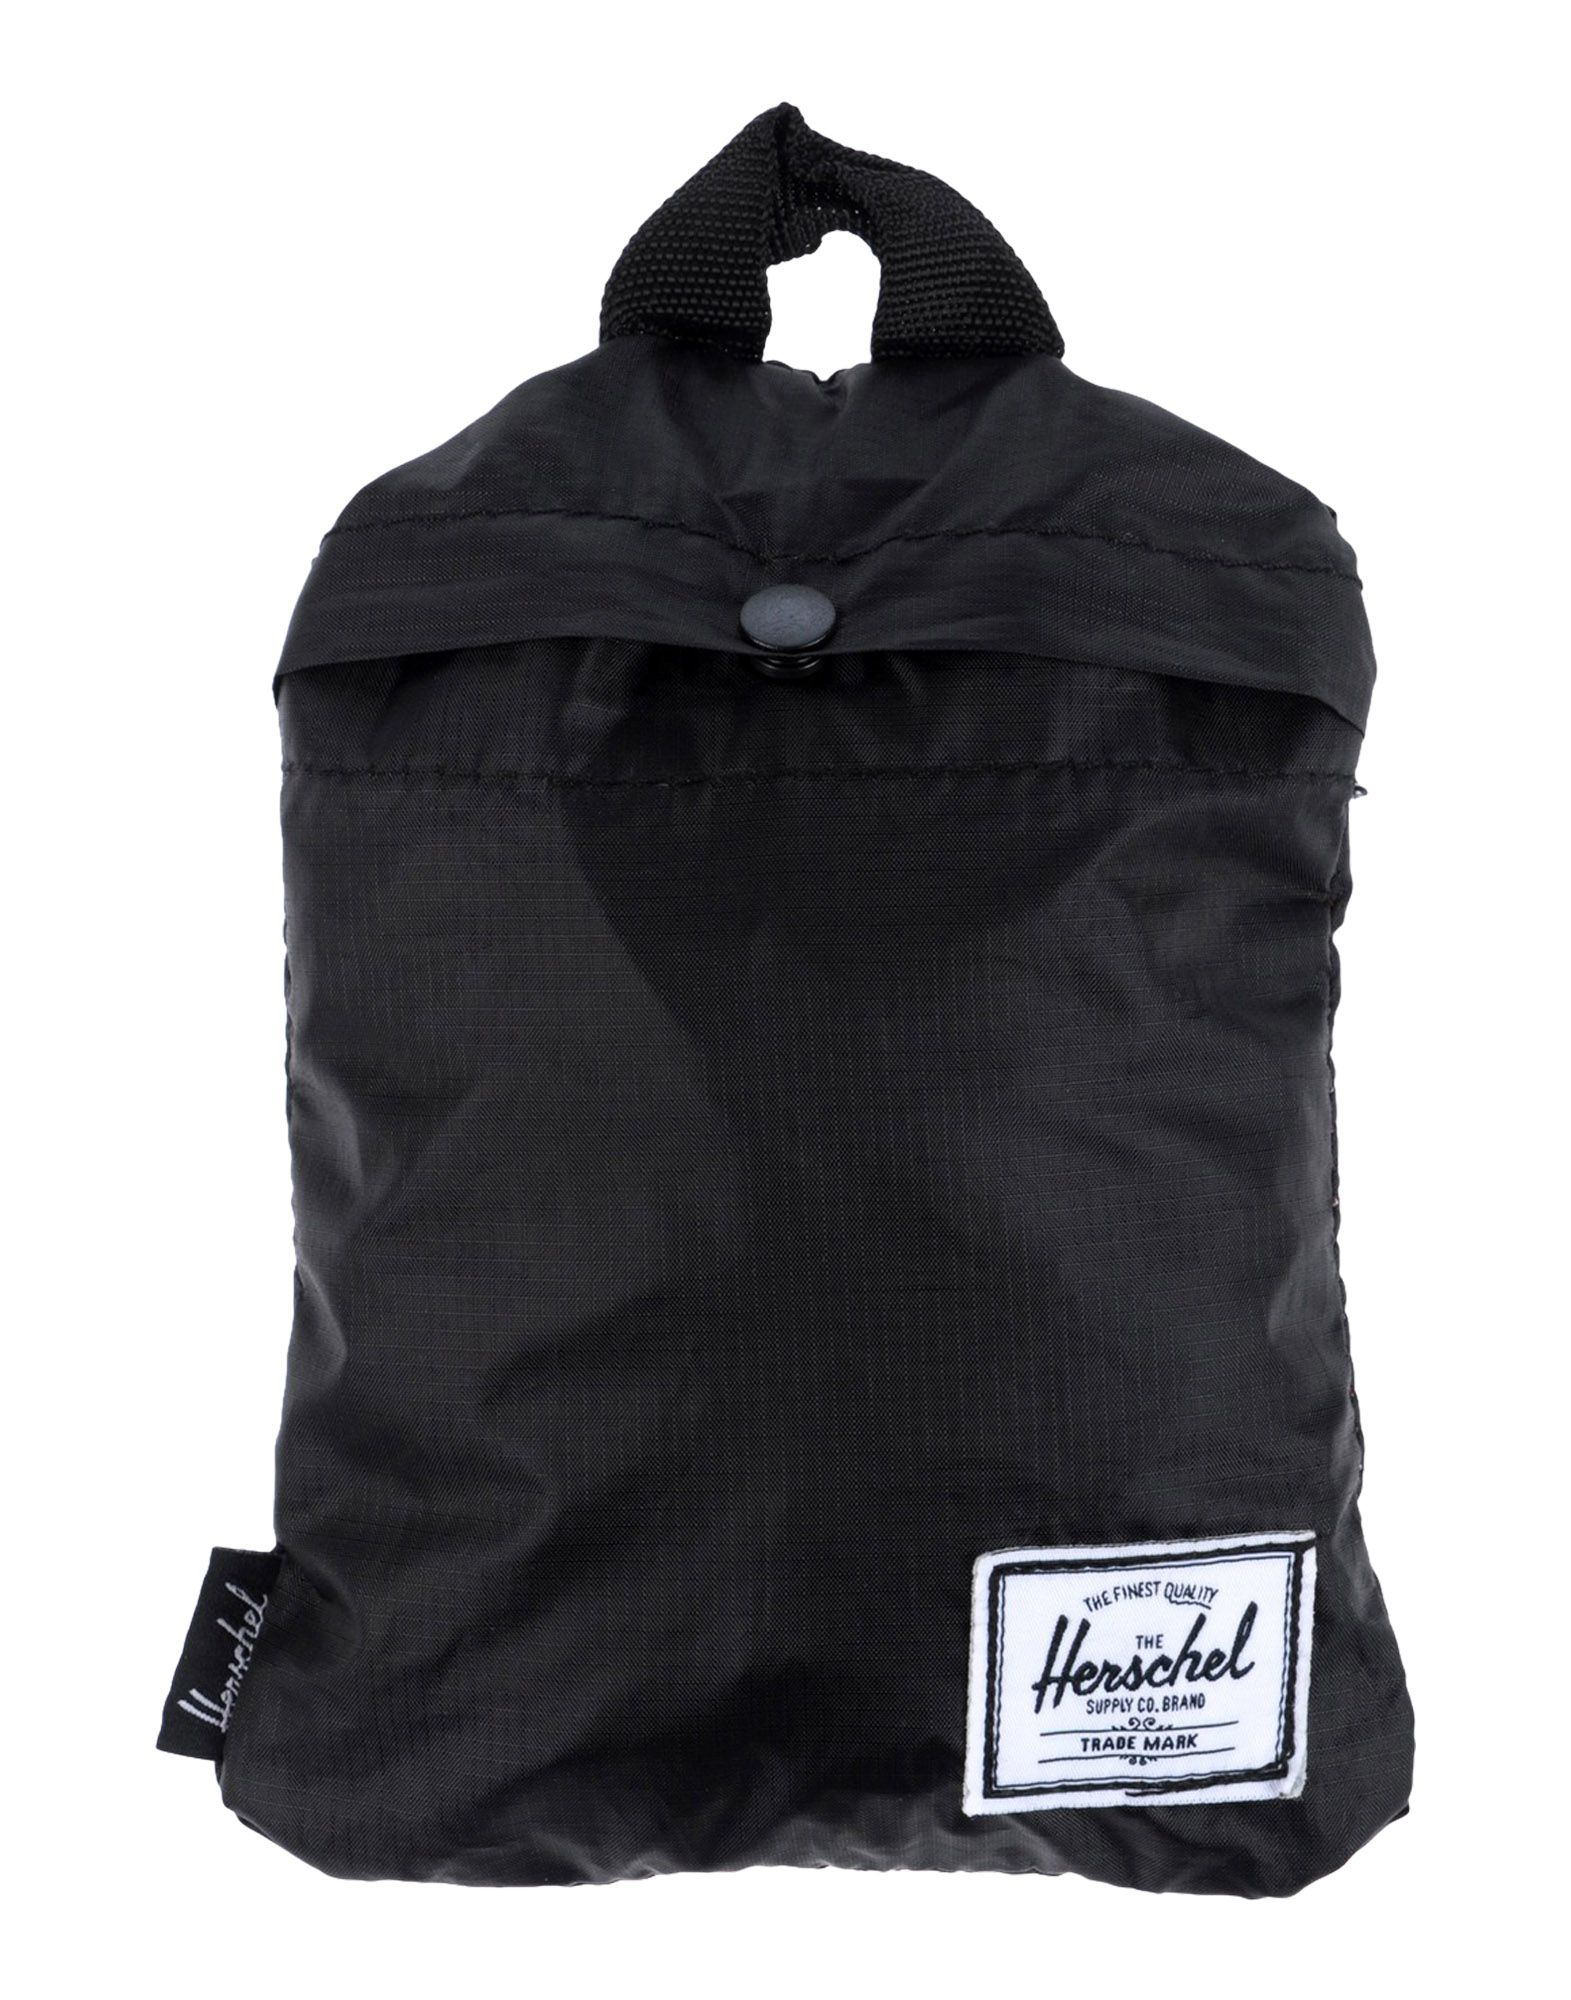 The Herschel Supply Co. Brand Sports Accessories